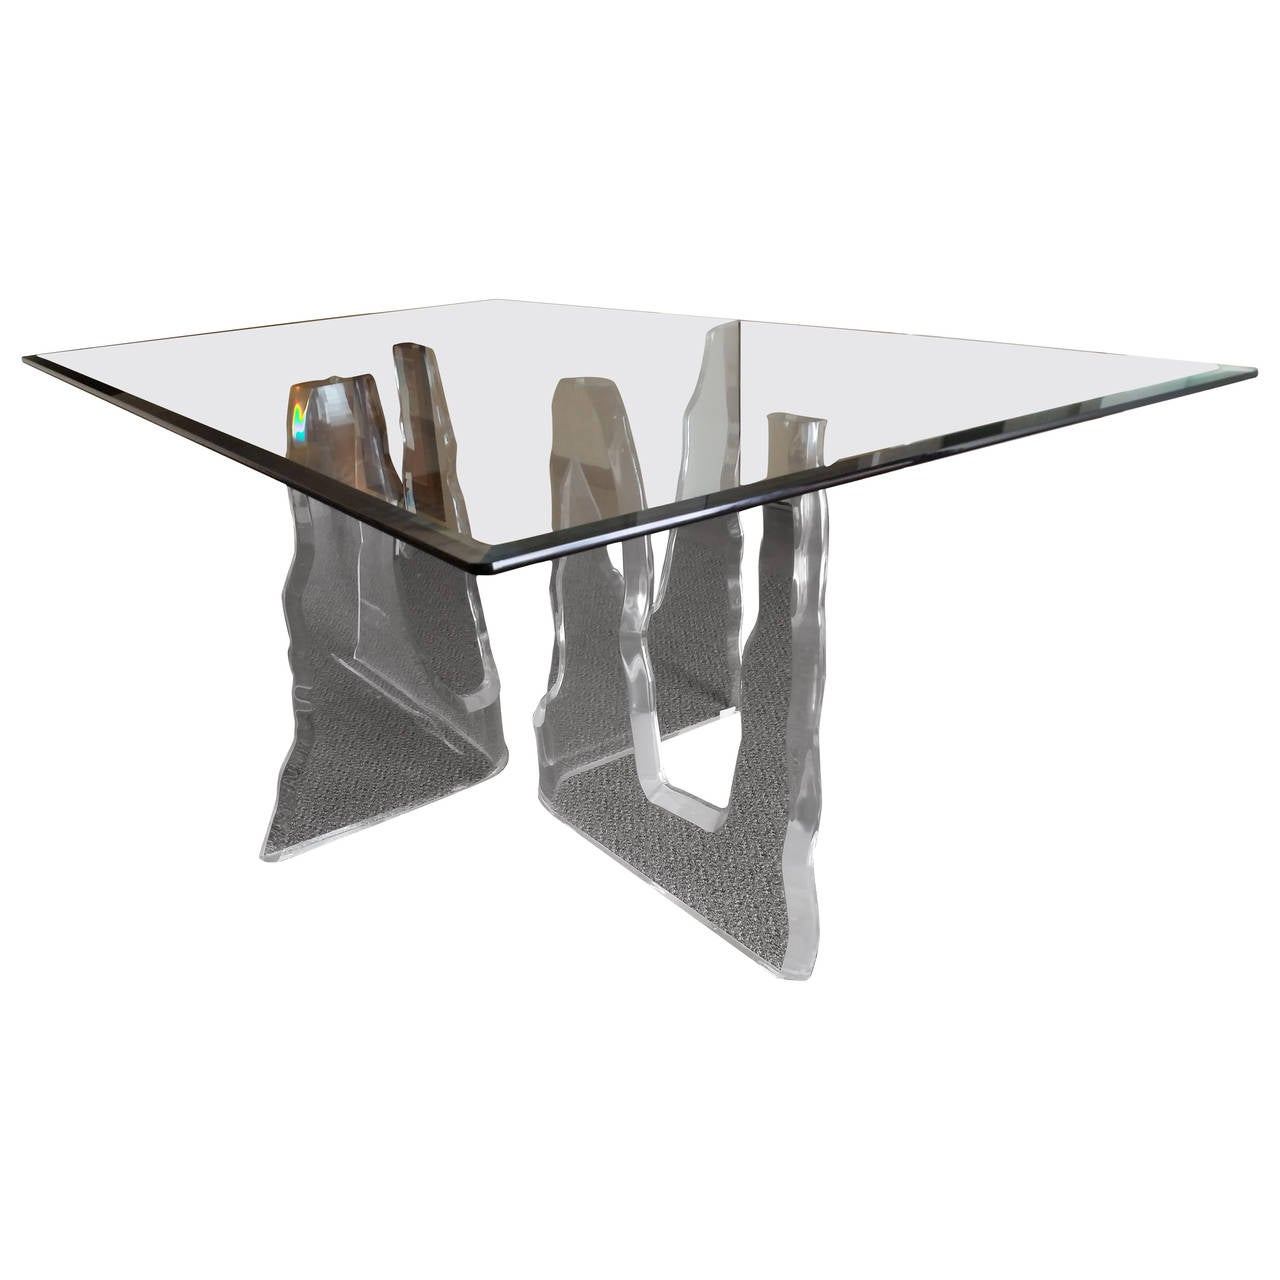 In frost lucite iceberg dining table at 1stdibs lion in frost lucite iceberg dining table at 1stdibs dzzzfo